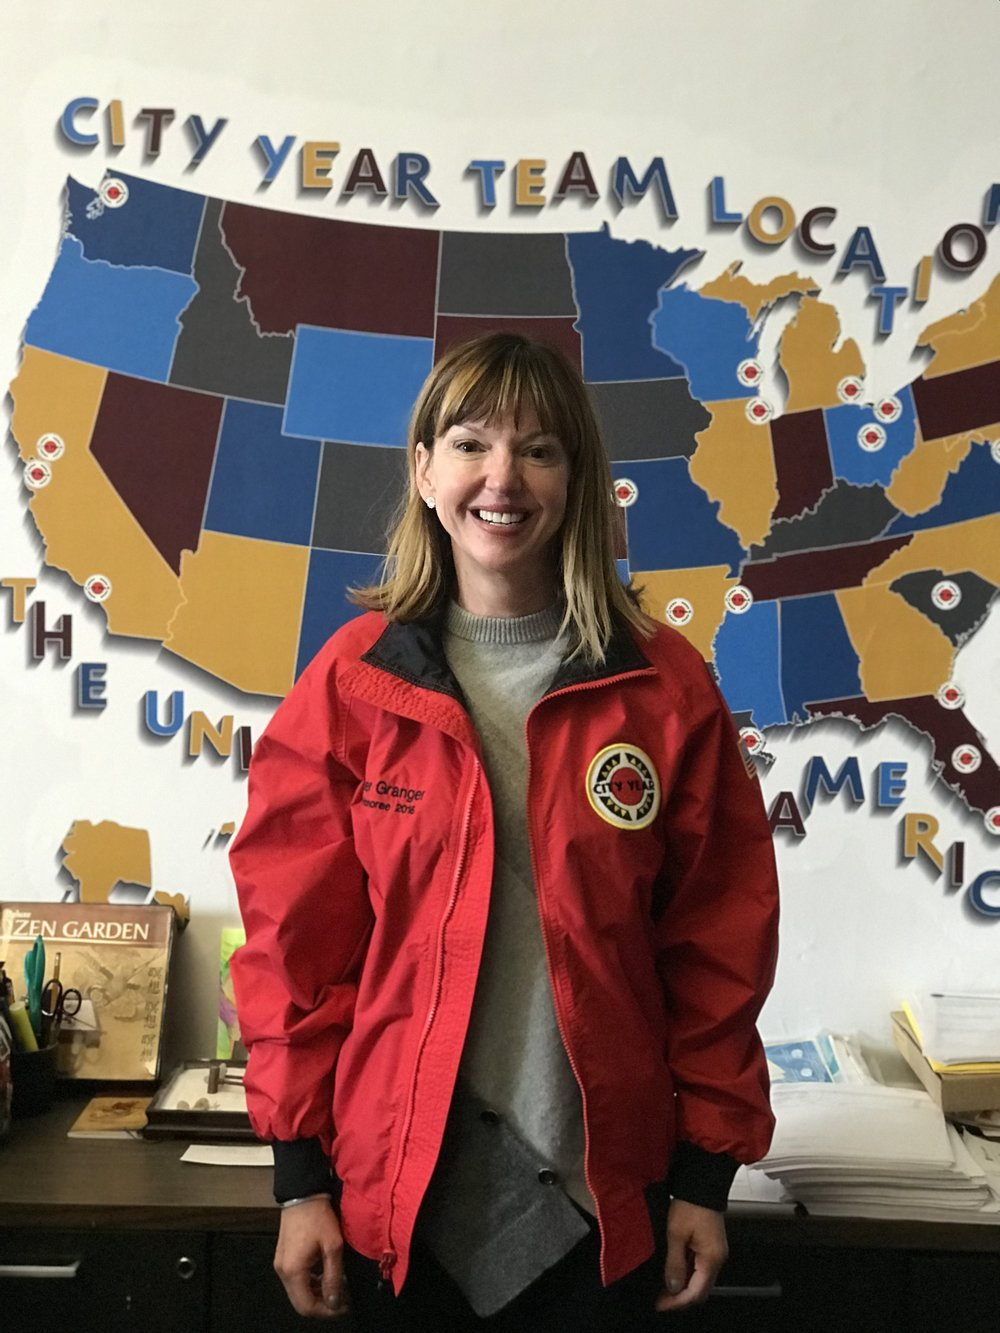 Jennifer Granger in her City Year red jacket